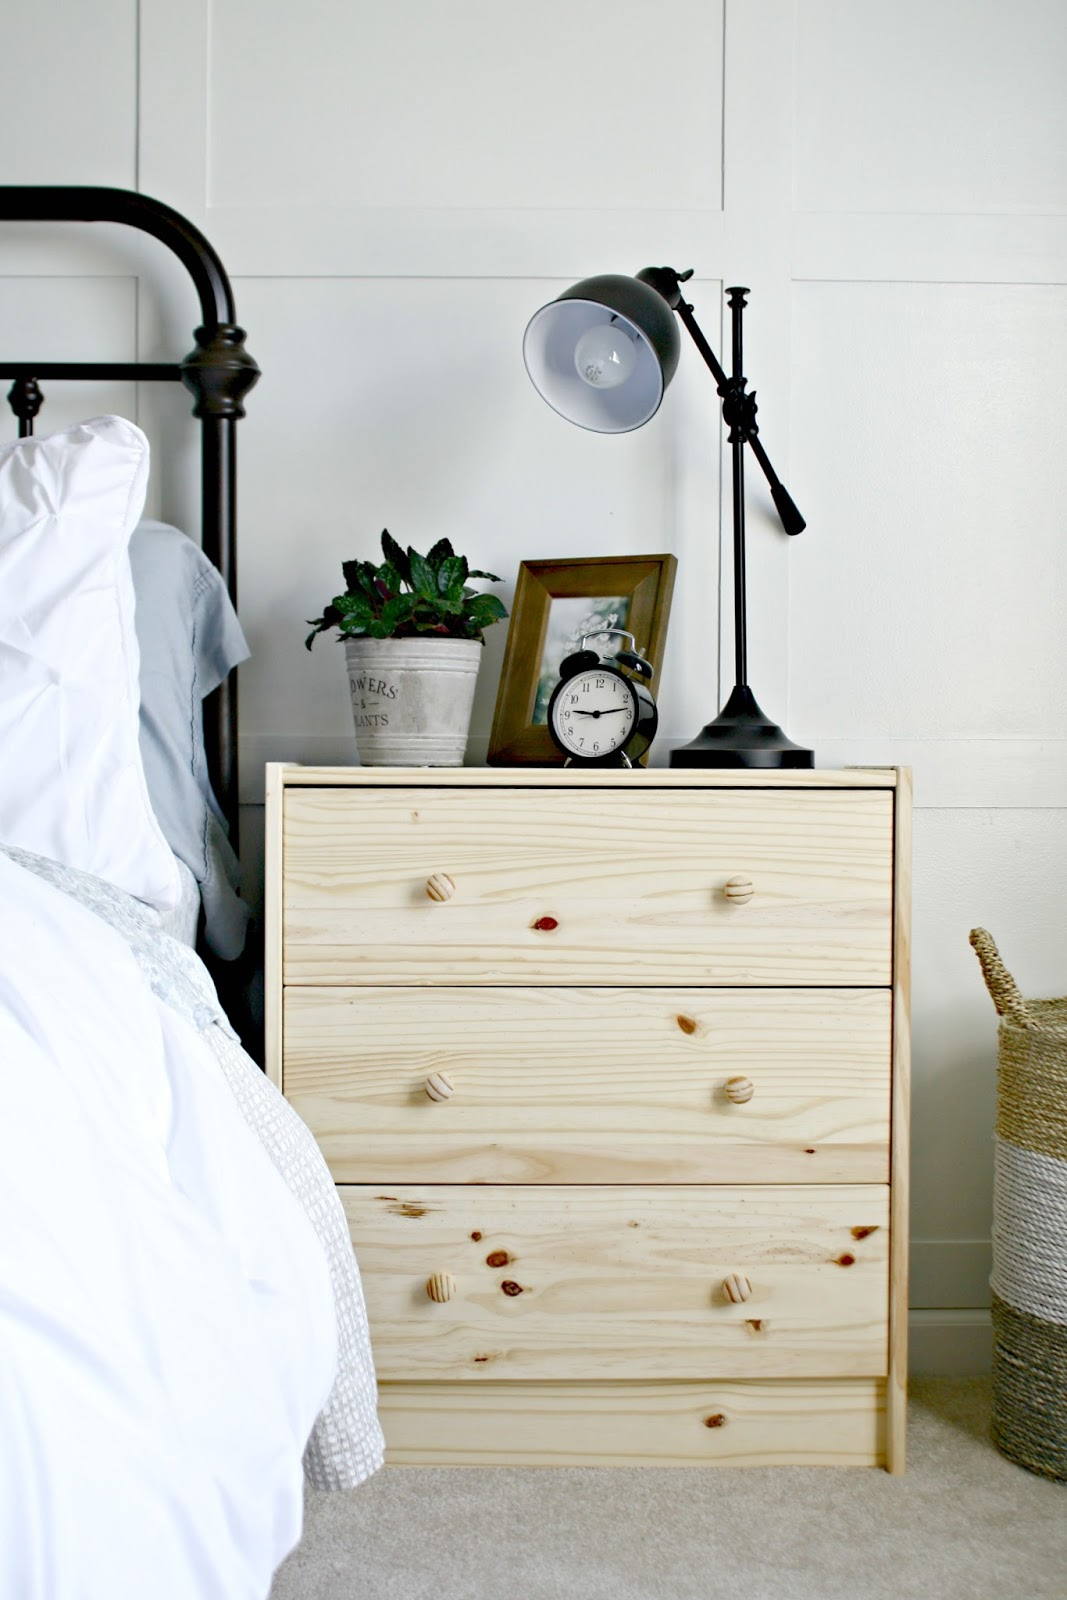 The lazy person's guide to painting furniture from Thrifty ...